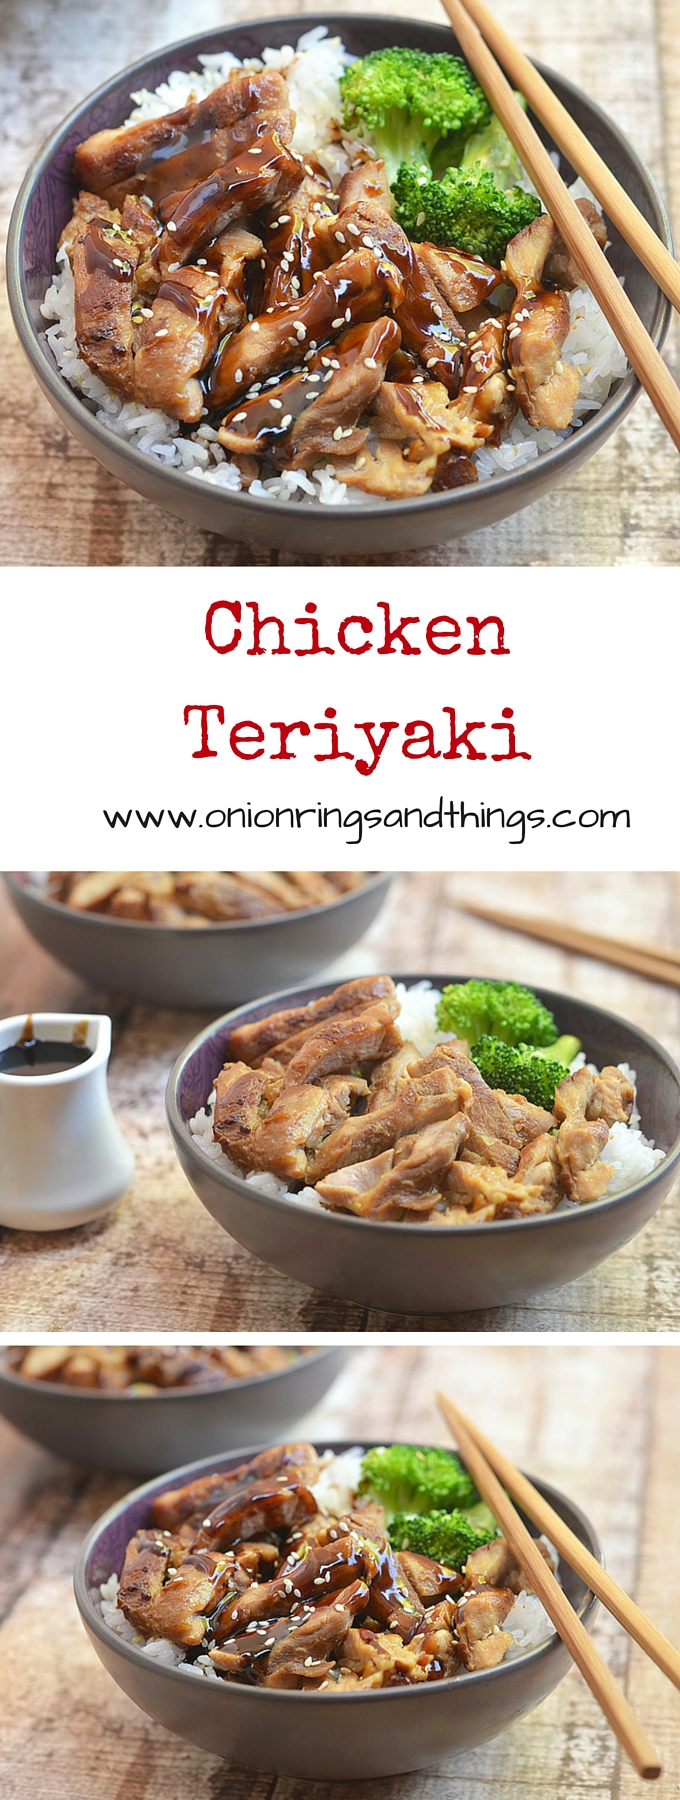 Chicken teriyaki with moist meat, full flavor and from-scratch teriyaki sauce. It's a breeze to make and is sure to please the whole family!